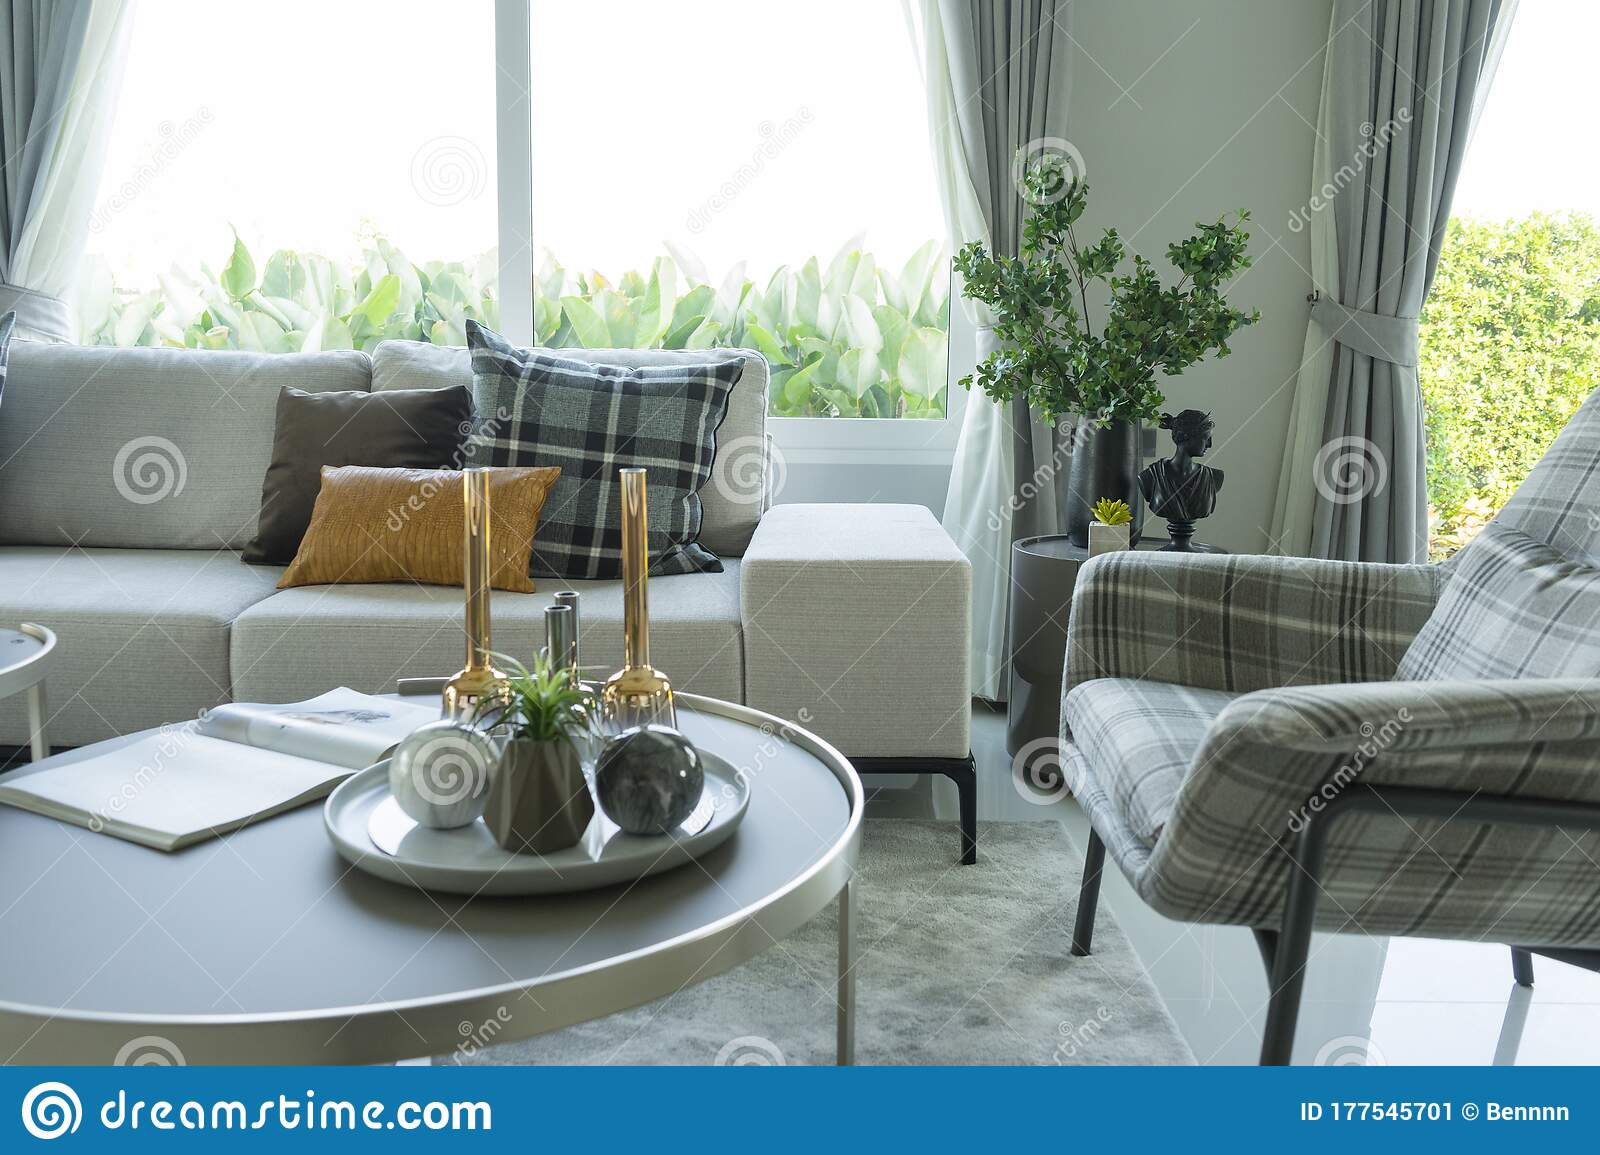 modern living room with gray sofa coffee table and plaid pattern cushions by the big window stock image image of furniture contemporary 177545701